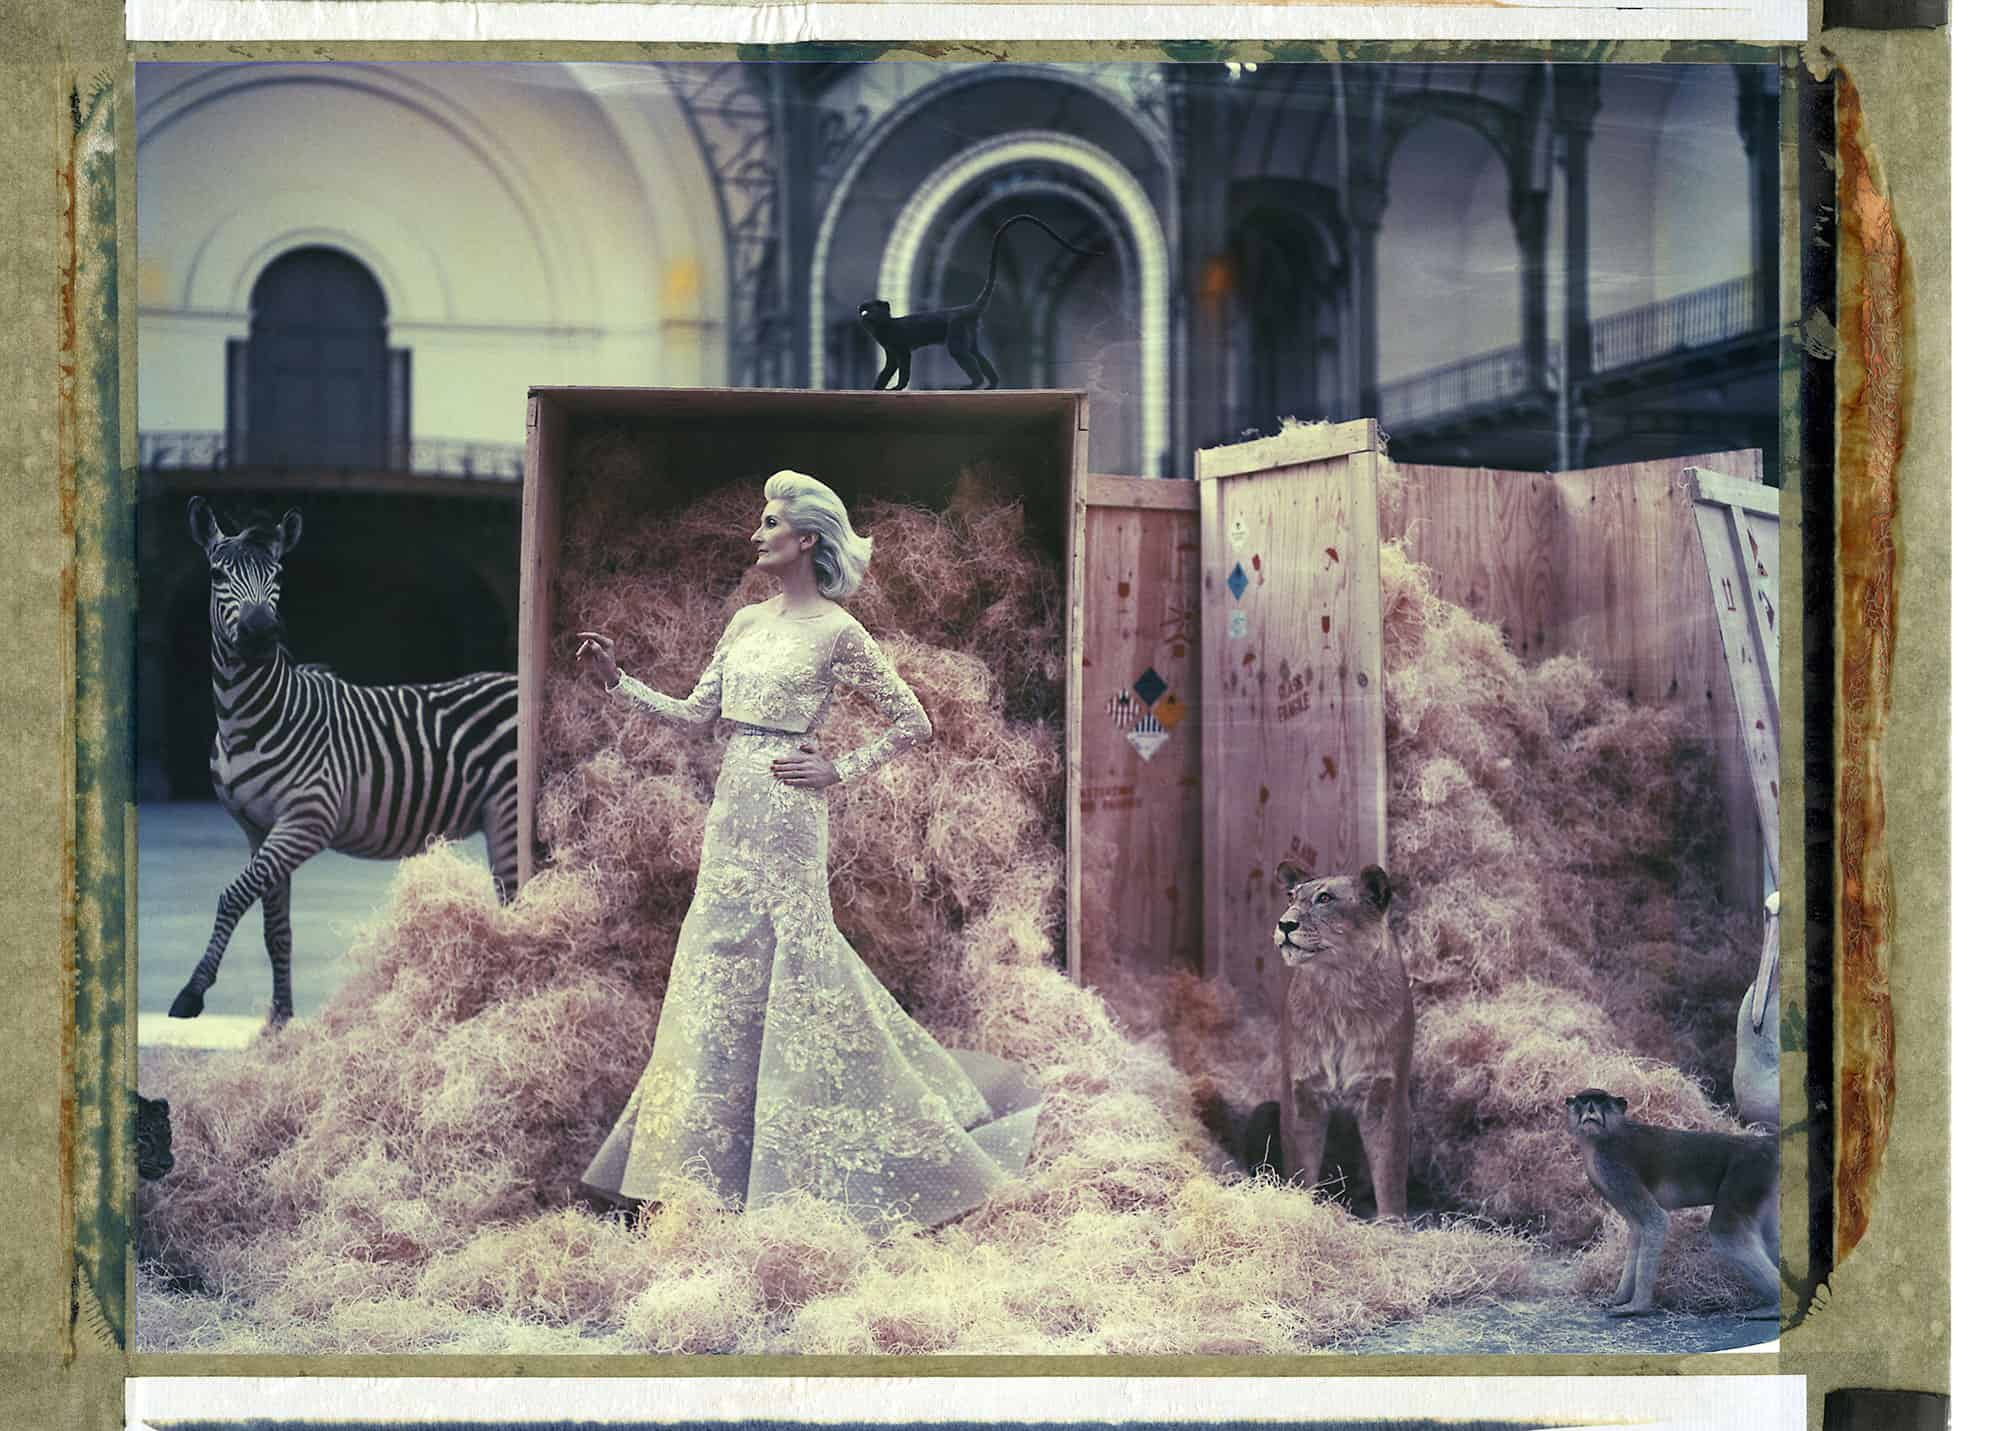 Fine art color photography of a fashion model wearing haute couture by Elie Saab with stuffed zebra, lion and two monkeys, at the Grand Palais, Paris.